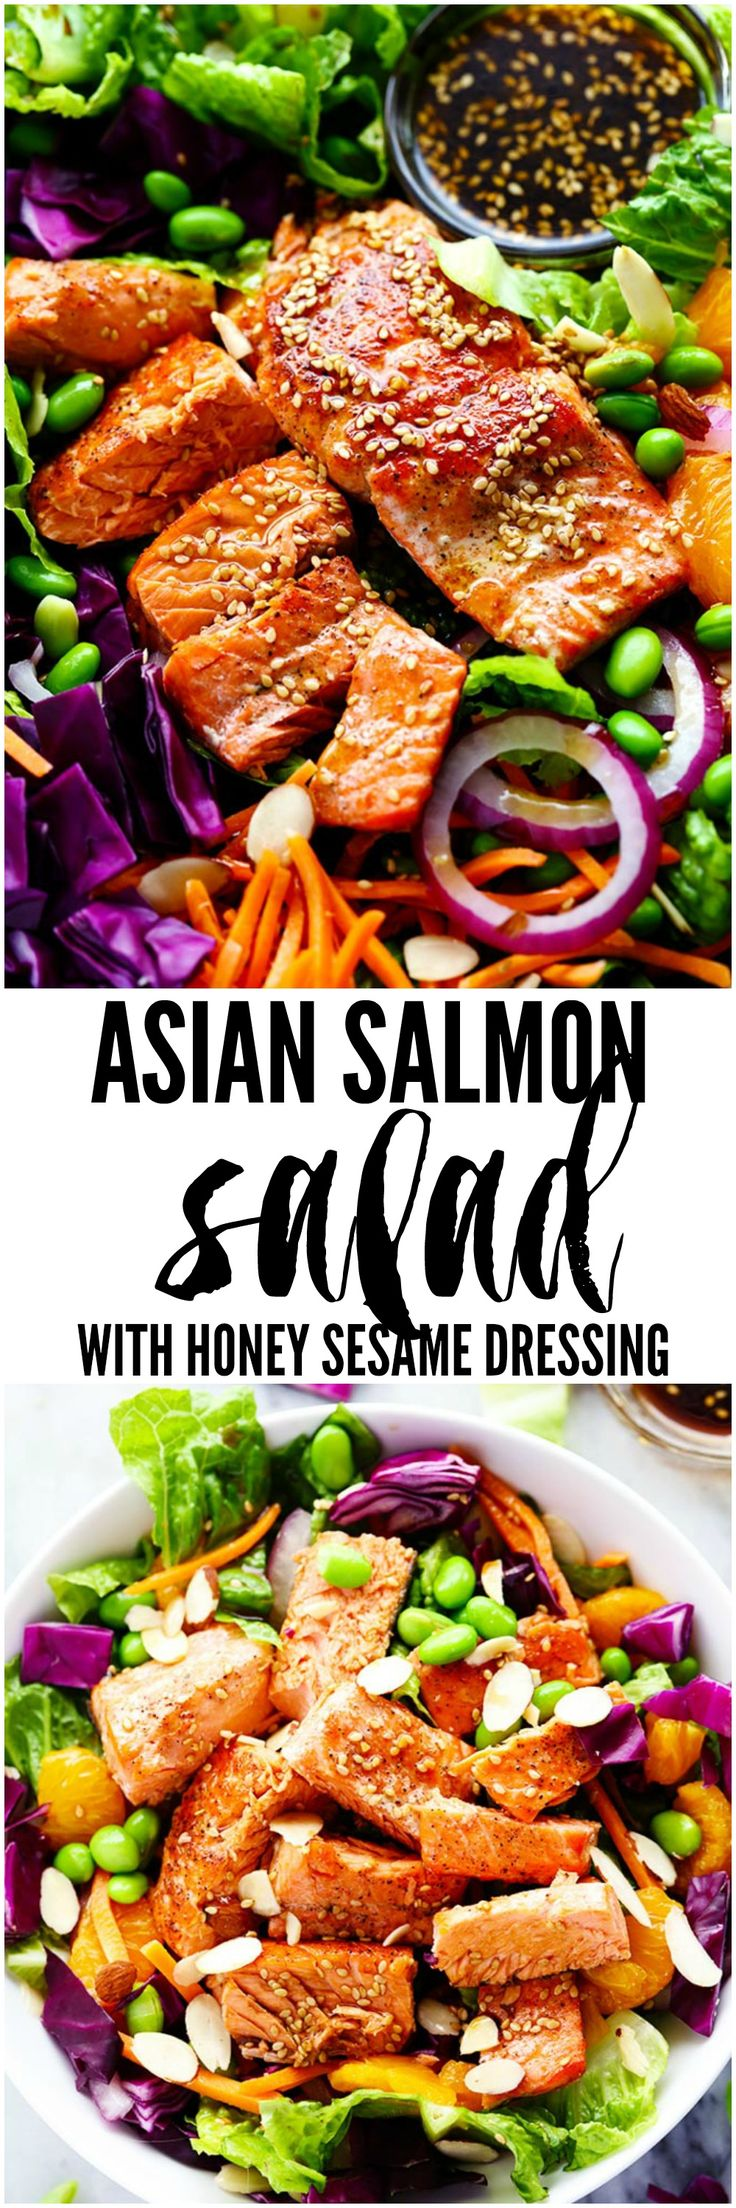 Asian Pan Seared Salmon Salad is bright and vibrant and complete with an amazing honey sesame dressing that takes this salad to a whole new level of delicious!